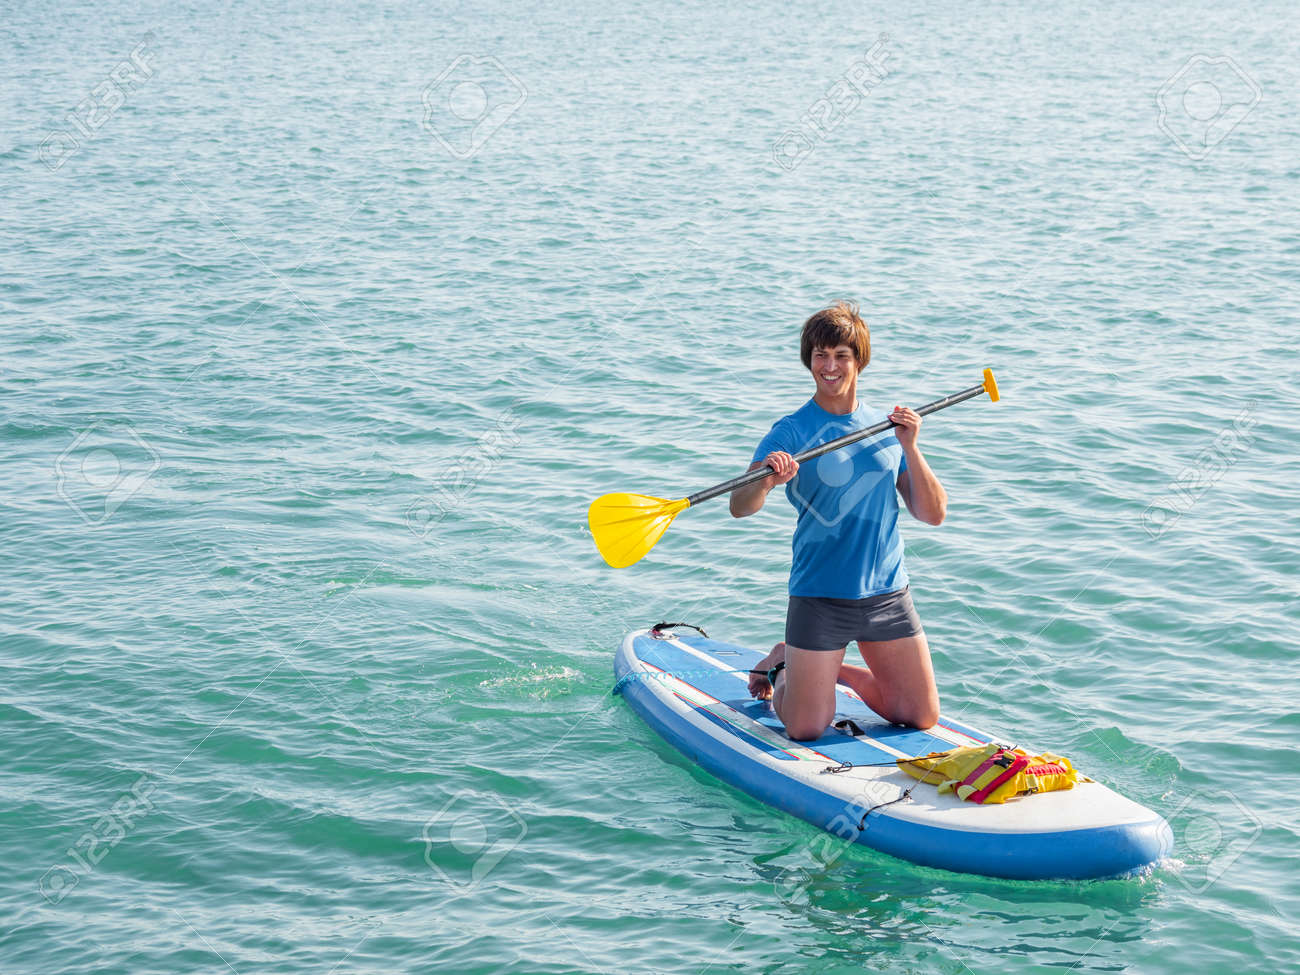 Paddle boarder. Sportsman on knees paddling on stand up paddleboard. SUP surfing. Active lifestyle. Outdoor recreation. Vacation on seaside. - 172806594